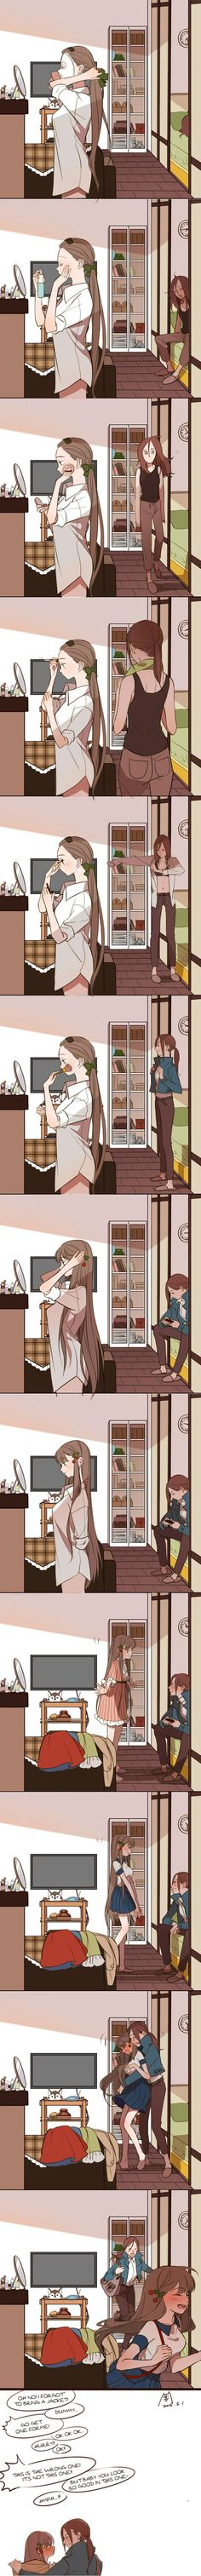 This is like me and my girlfriend. She takes hr to get ready and me it takes 15 or 20 min lol